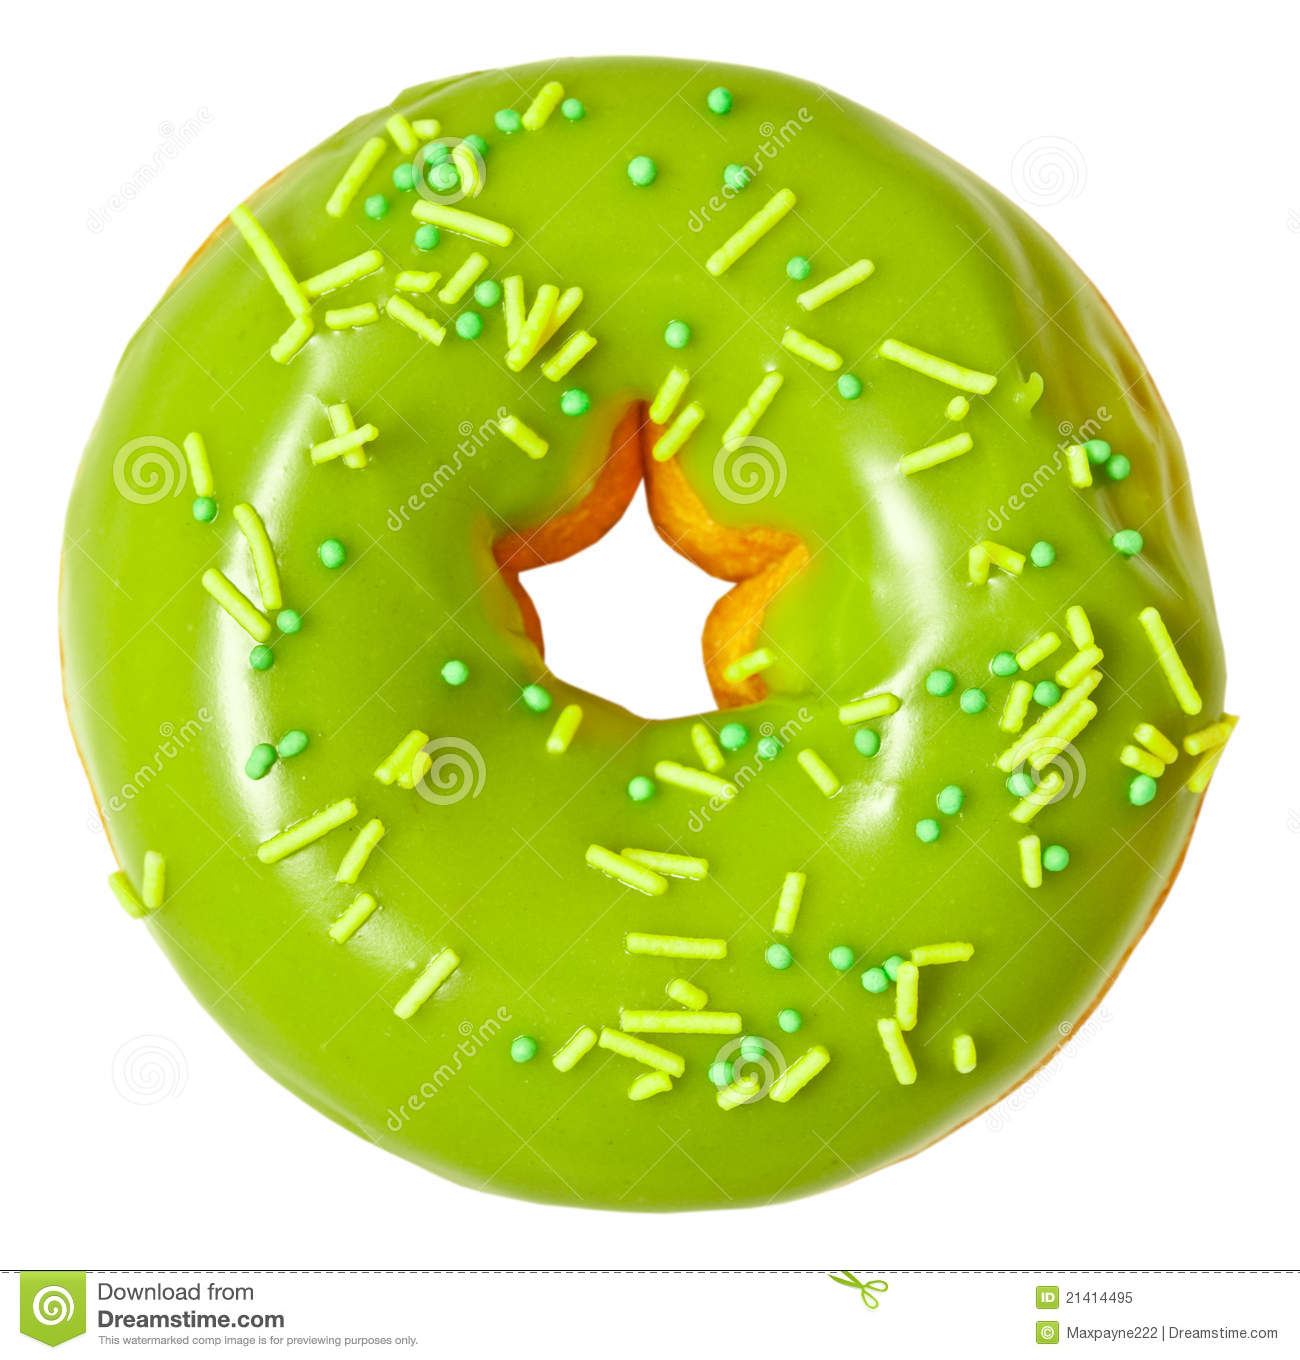 Donut Royalty Free Stock Photo - Image: 21414495